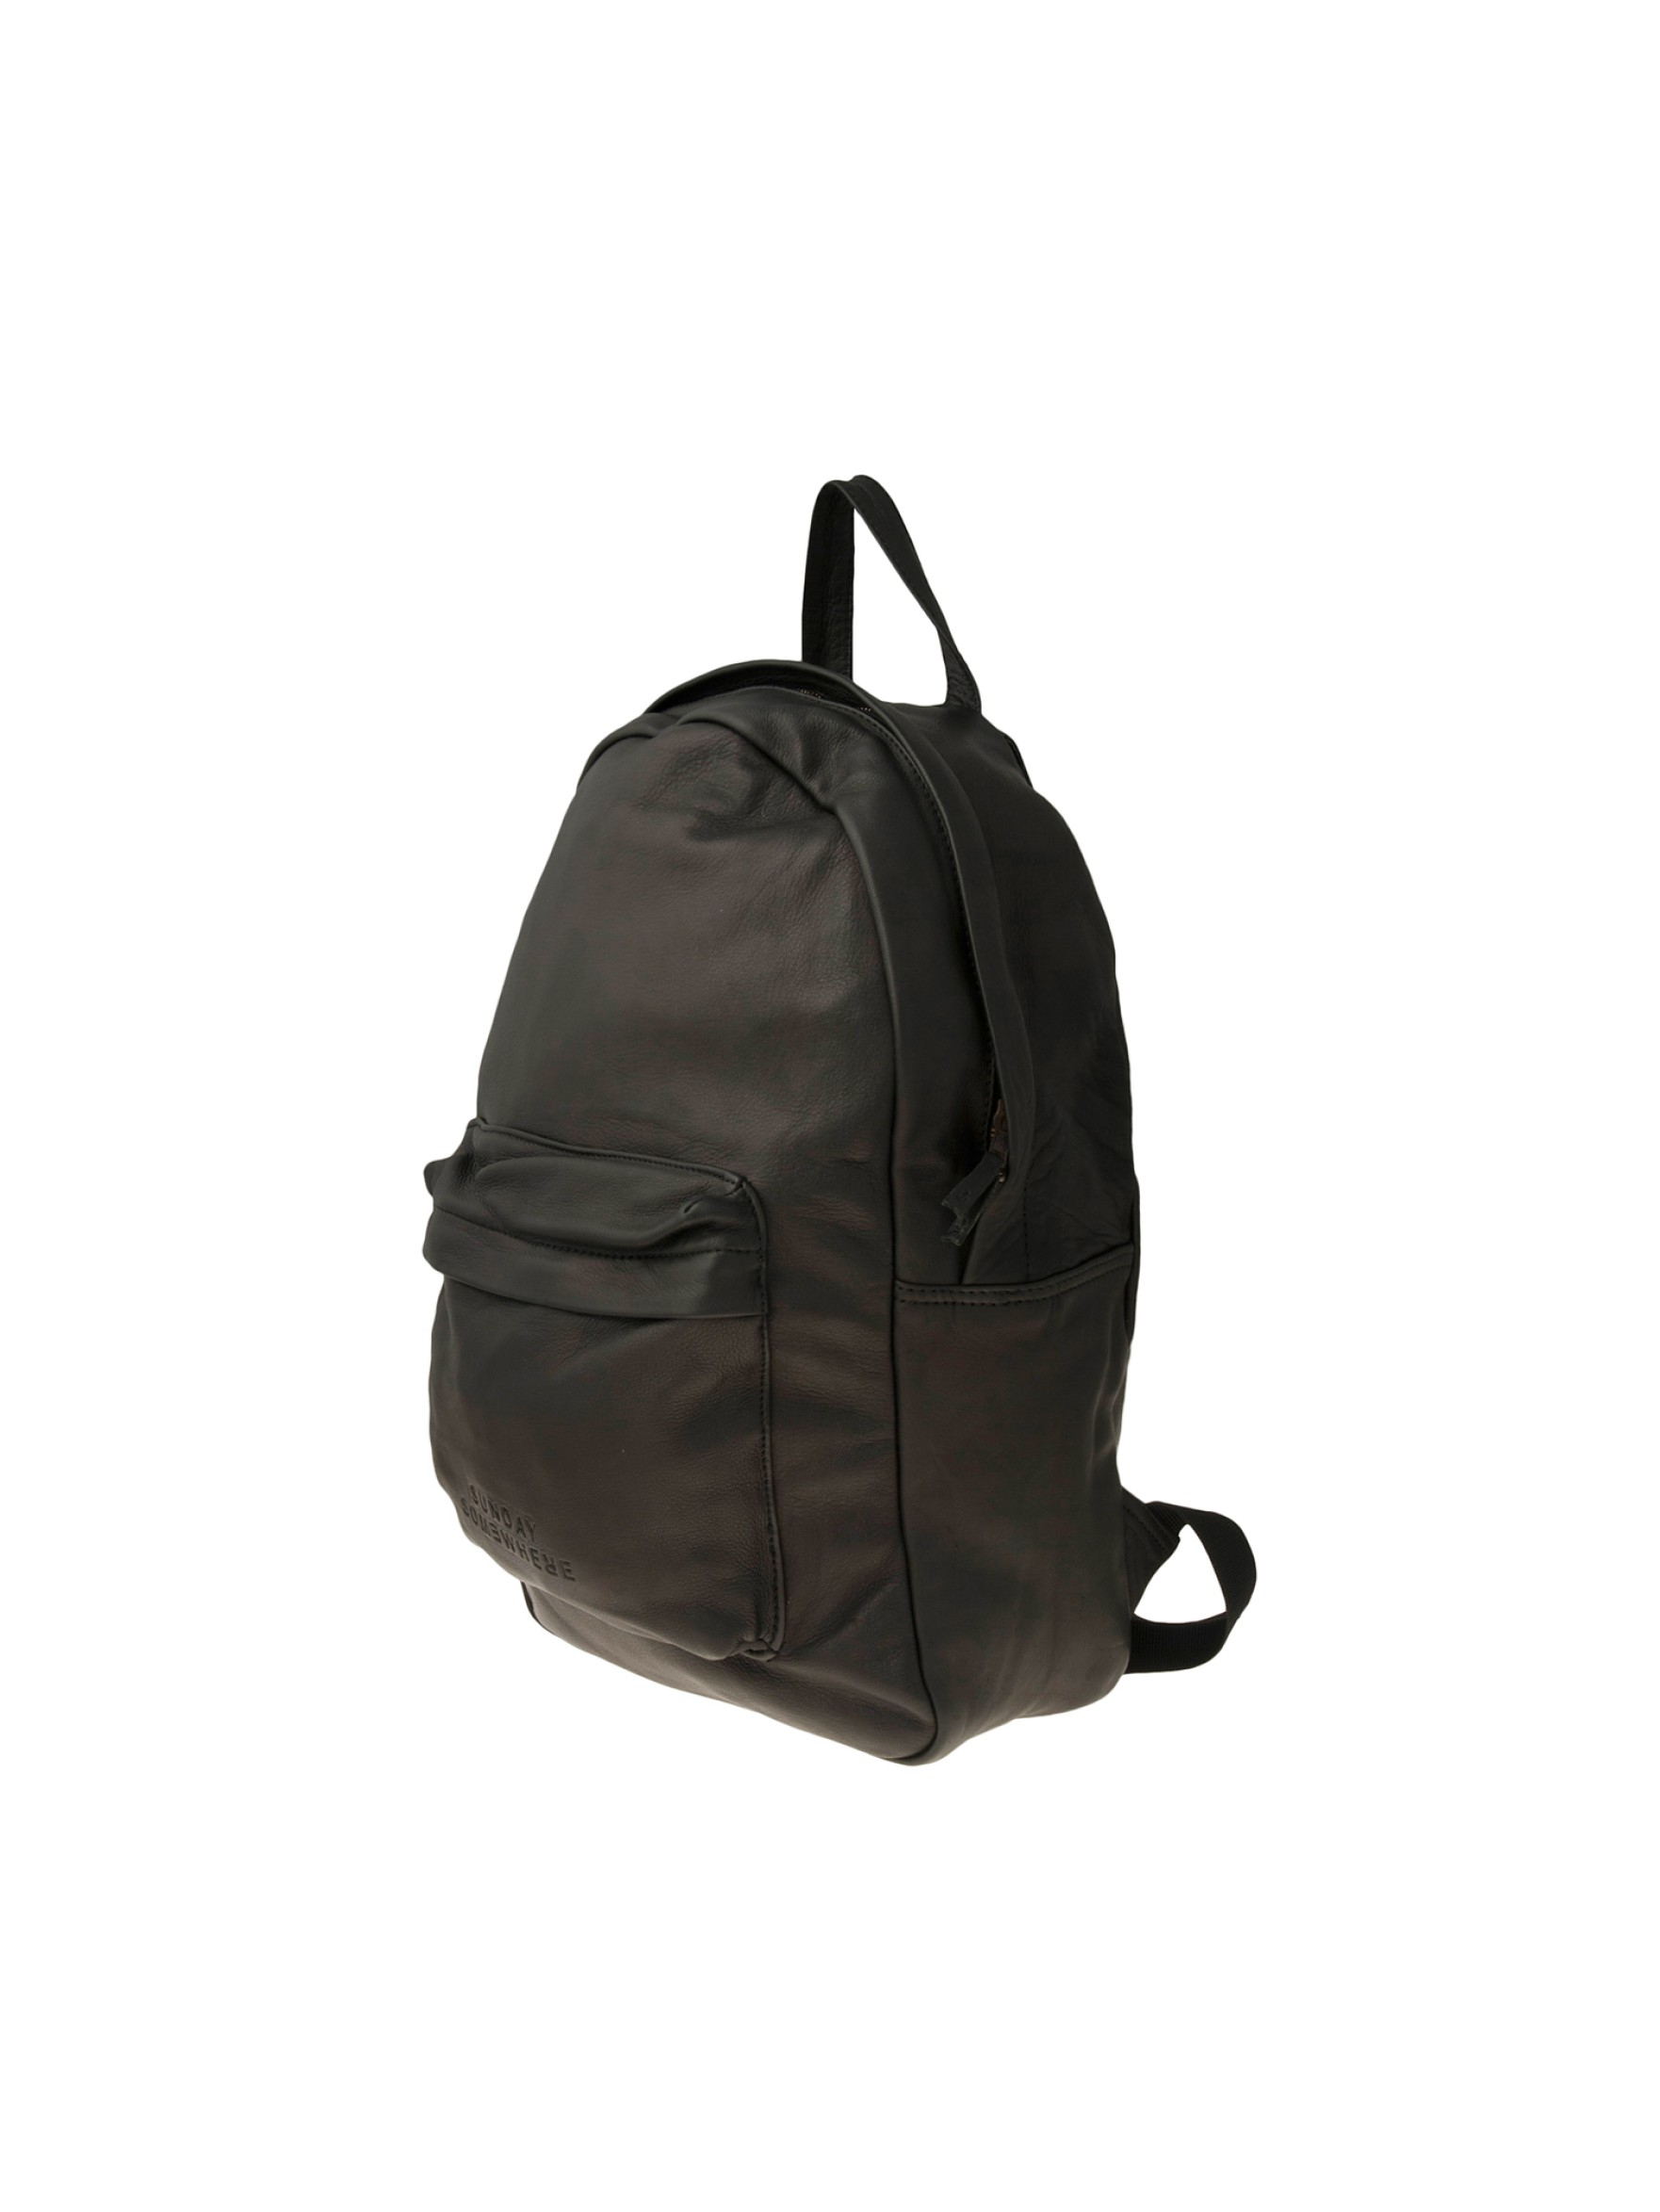 plain black jansport backpack crazy backpacks